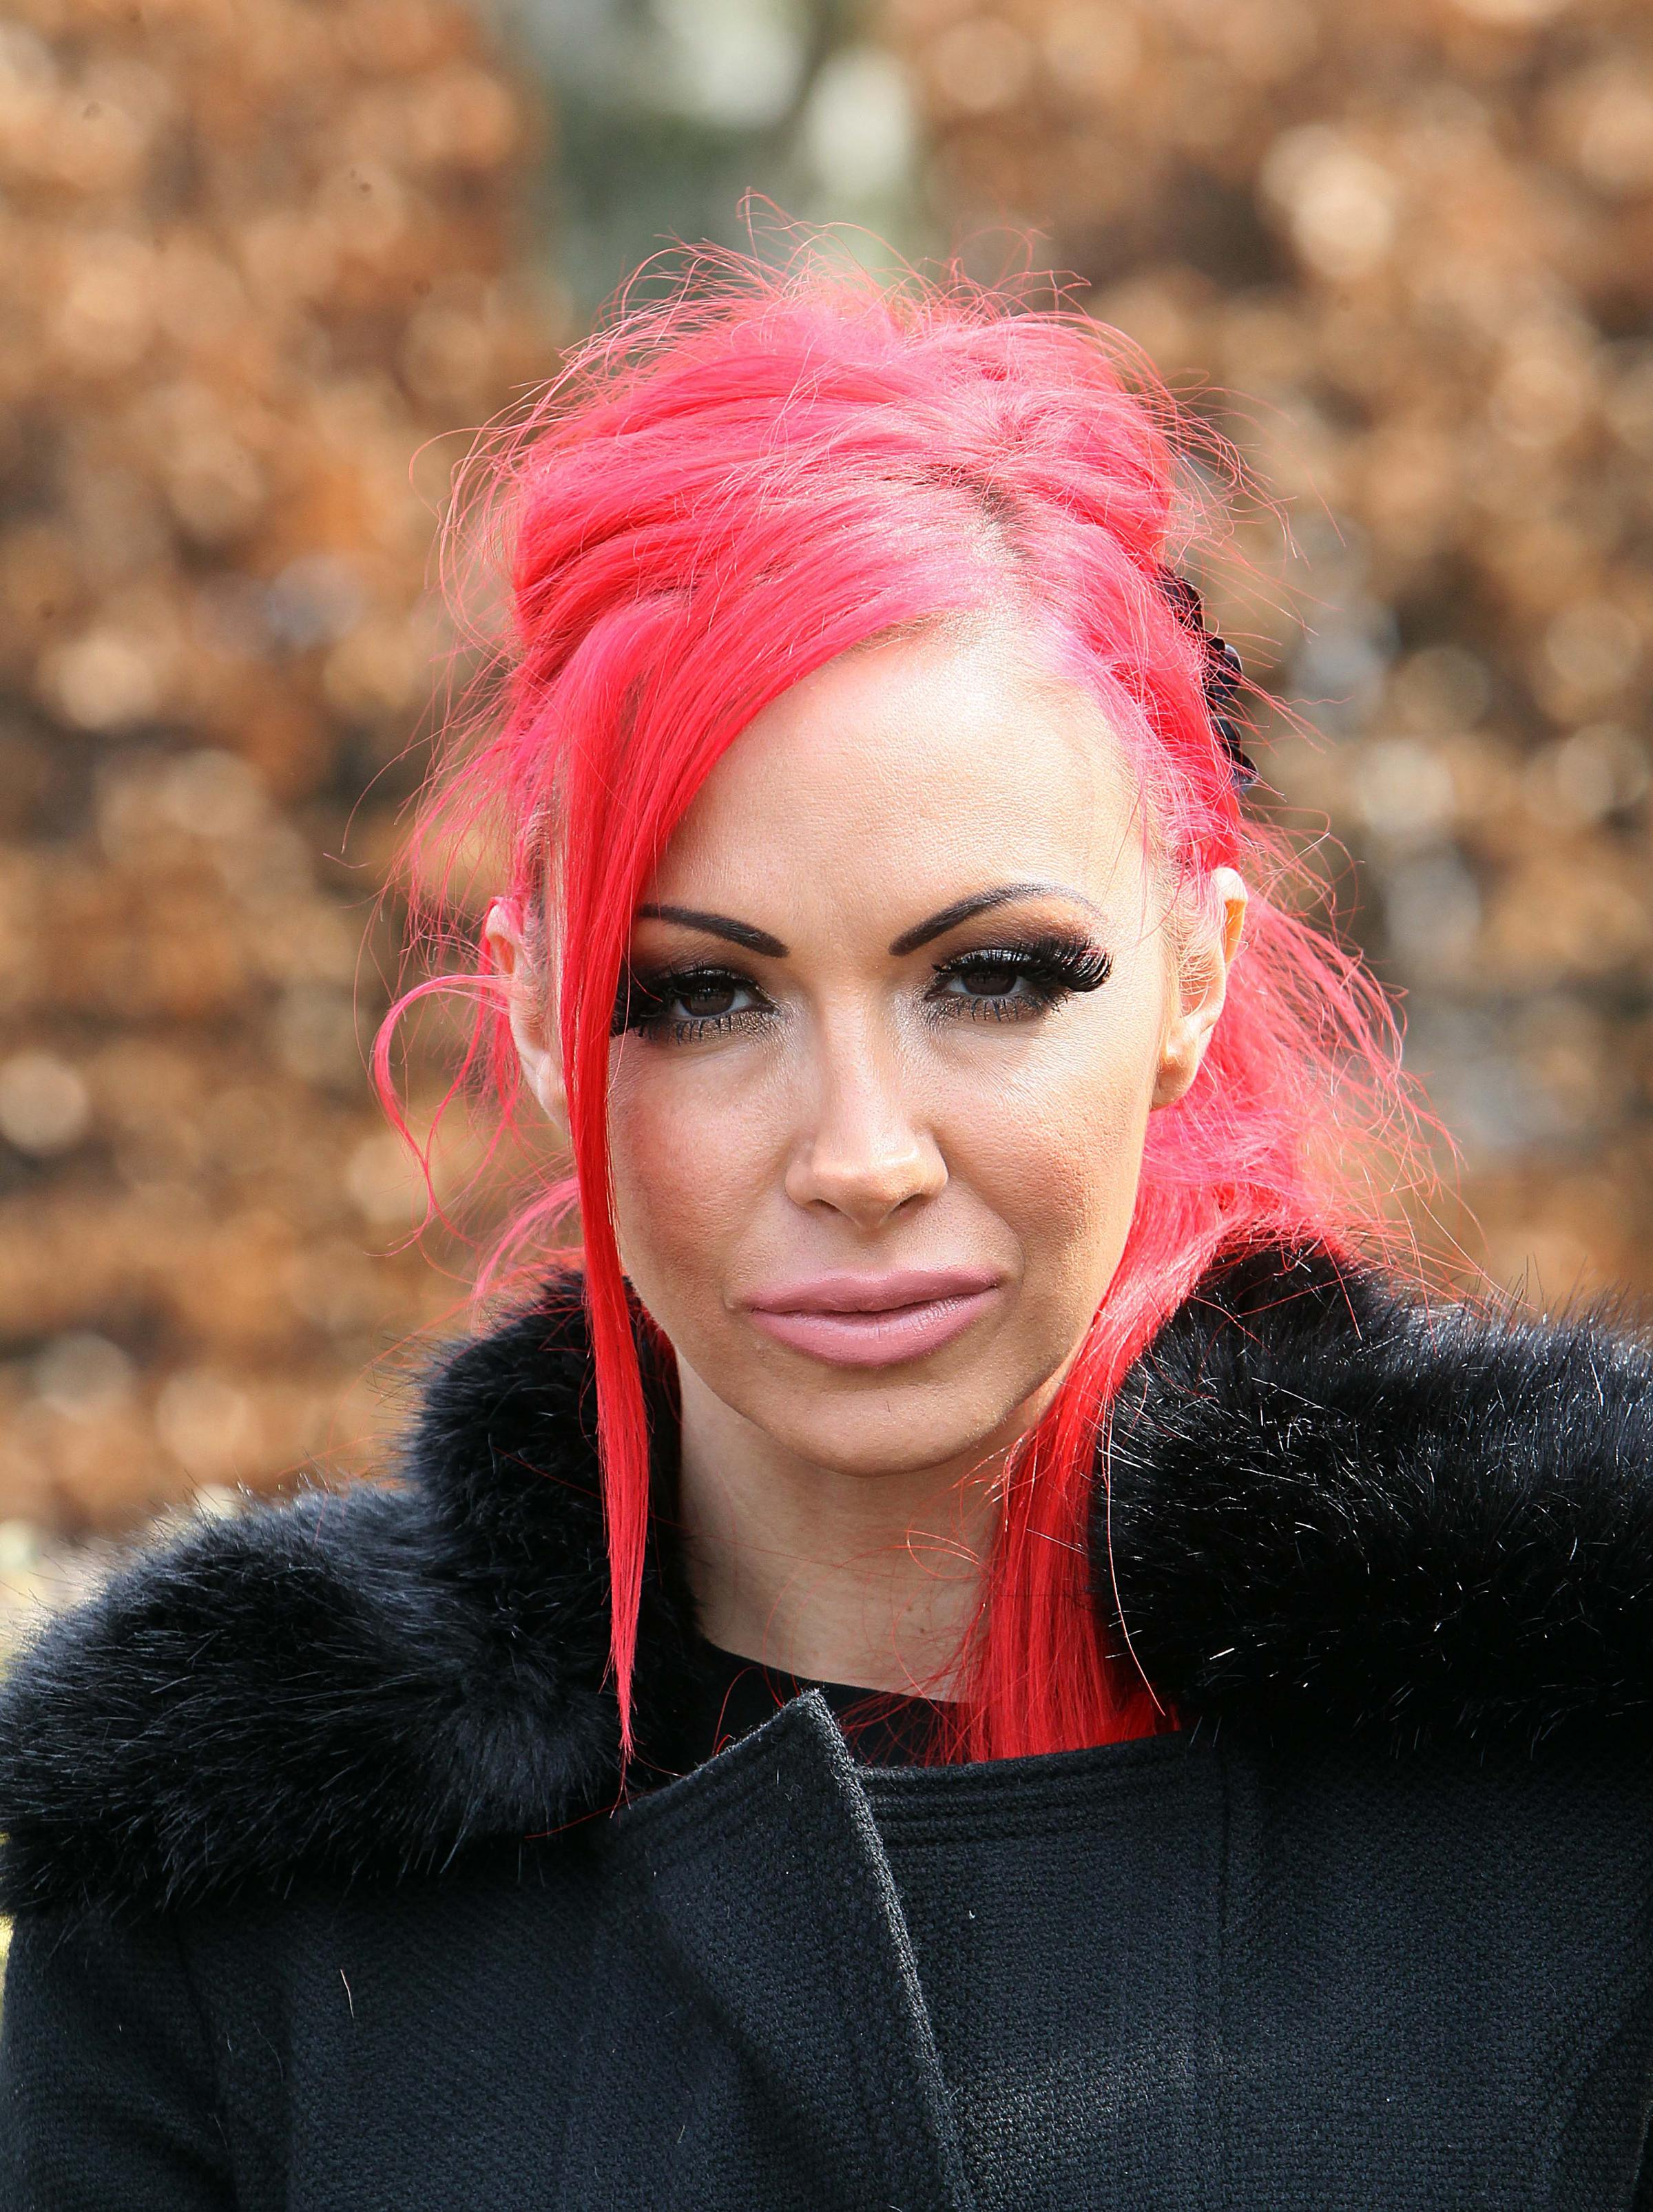 Pervert who bombarded Jodie Marsh with obscene pictures is found guilty of stalking